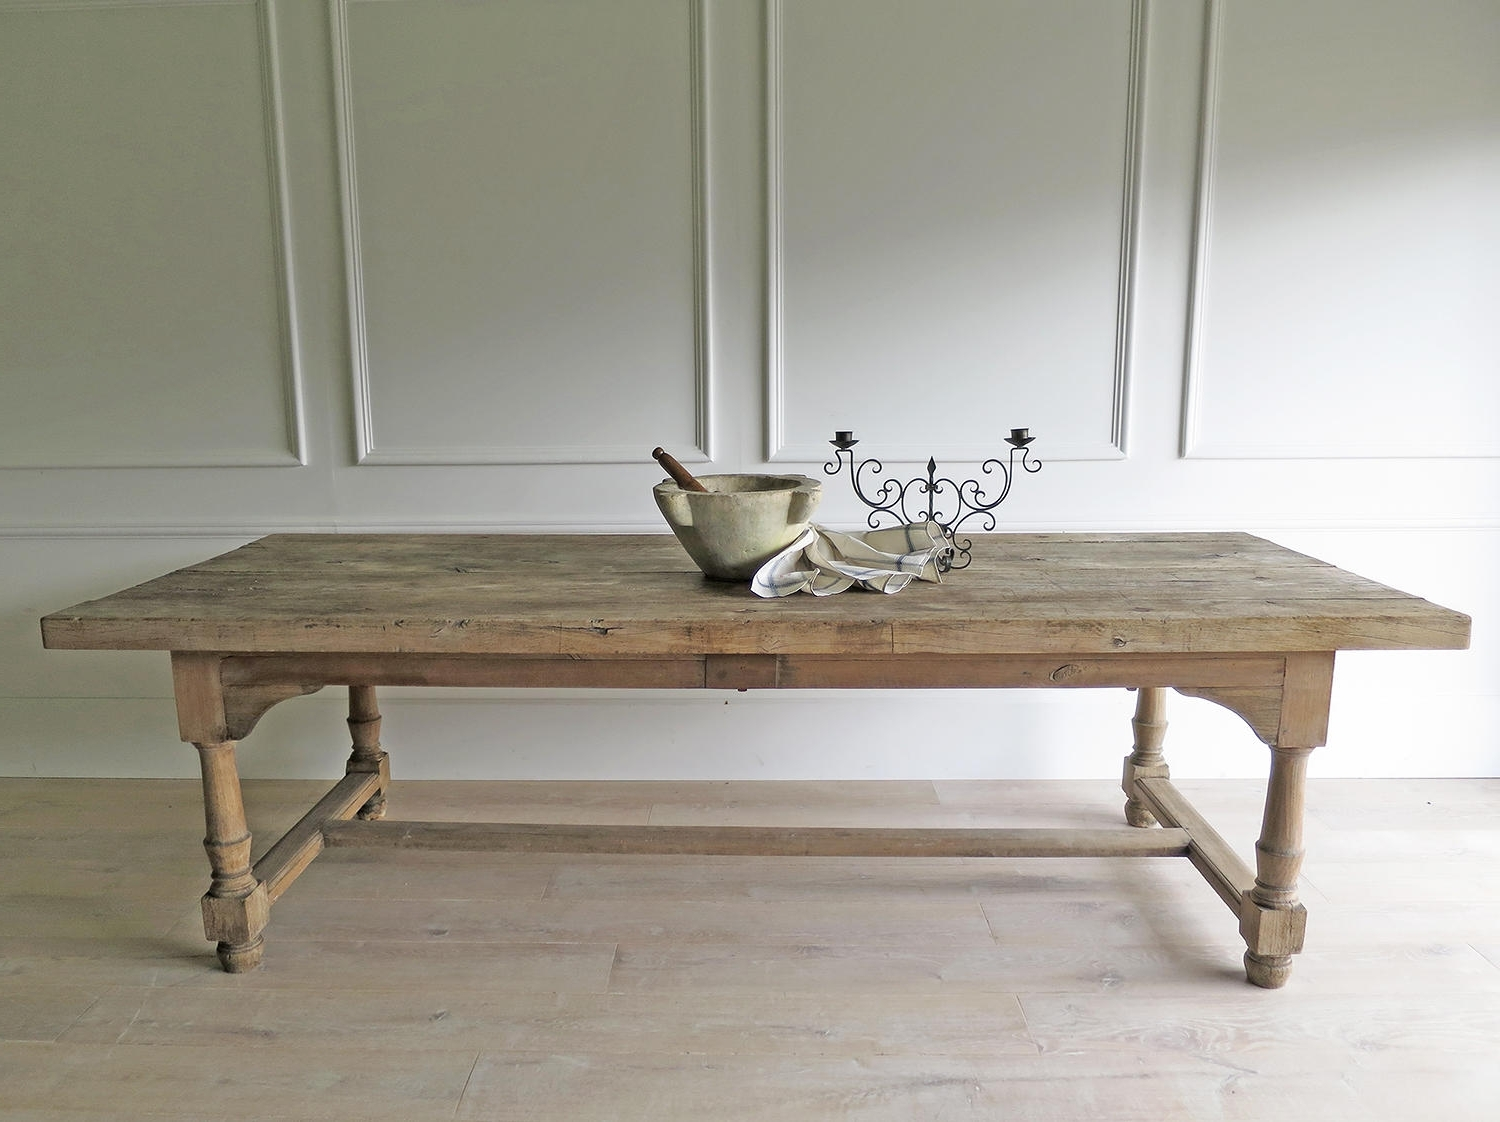 18Th C French Farmhouse Dining Table – Circa 1790 In Antique Tables Throughout Fashionable French Farmhouse Dining Tables (Gallery 3 of 25)